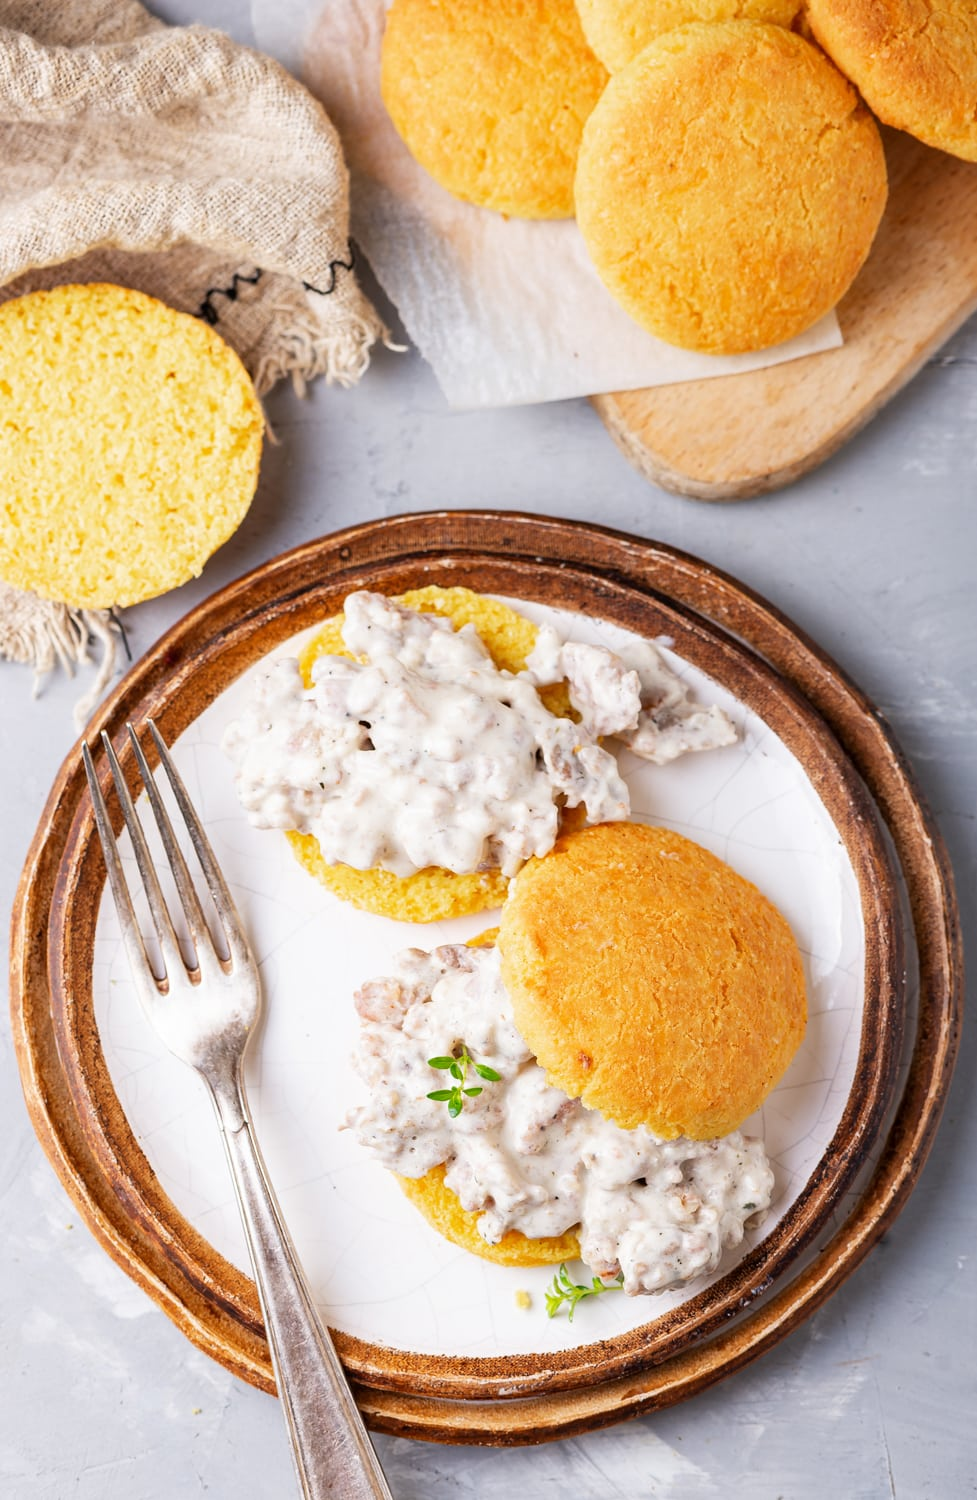 A plate with a biscuits and gravy on it. There are more biscuits scattered around the plate as well.